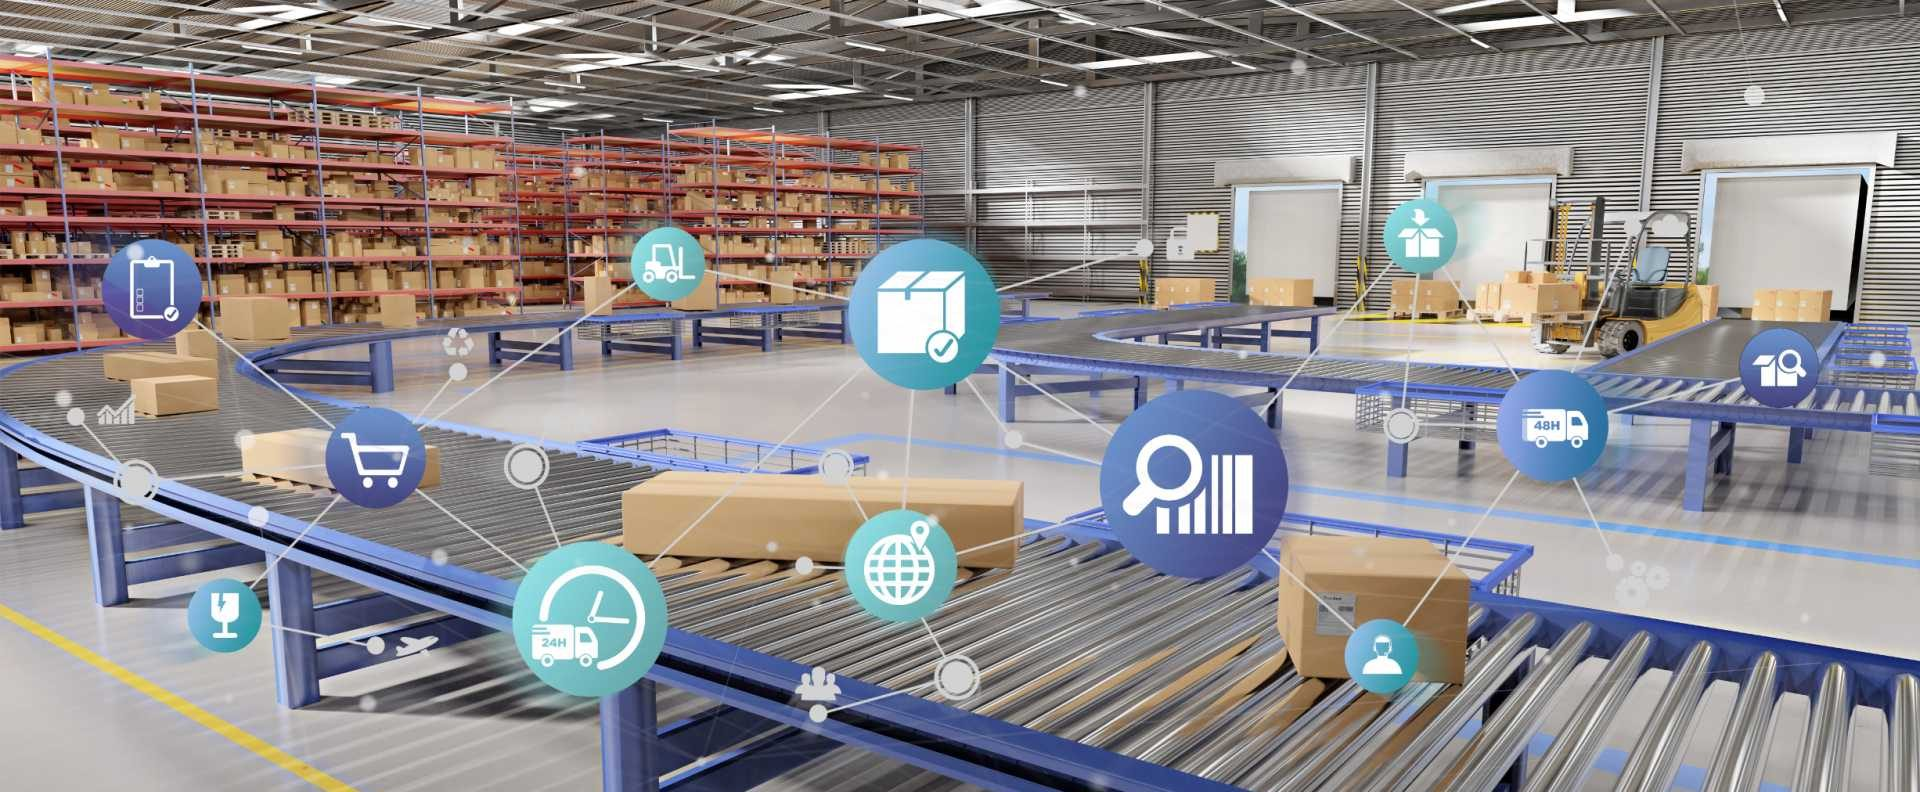 Logistics supply chain resilience digital technologies transformation warehouse iot connectivity data - shutterstock_1144447313